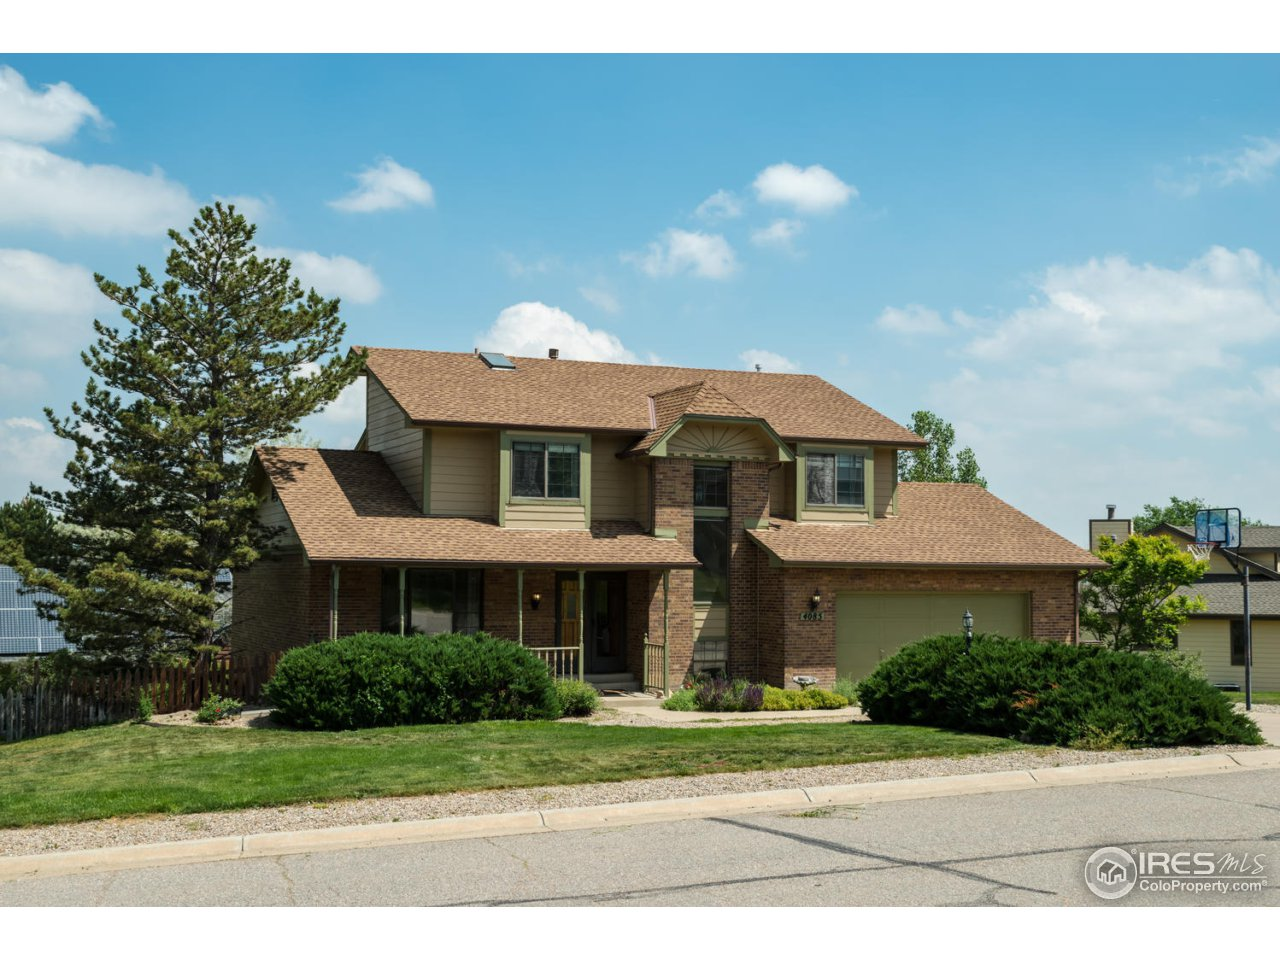 4085 Greens Pl, Longmont, CO 80503